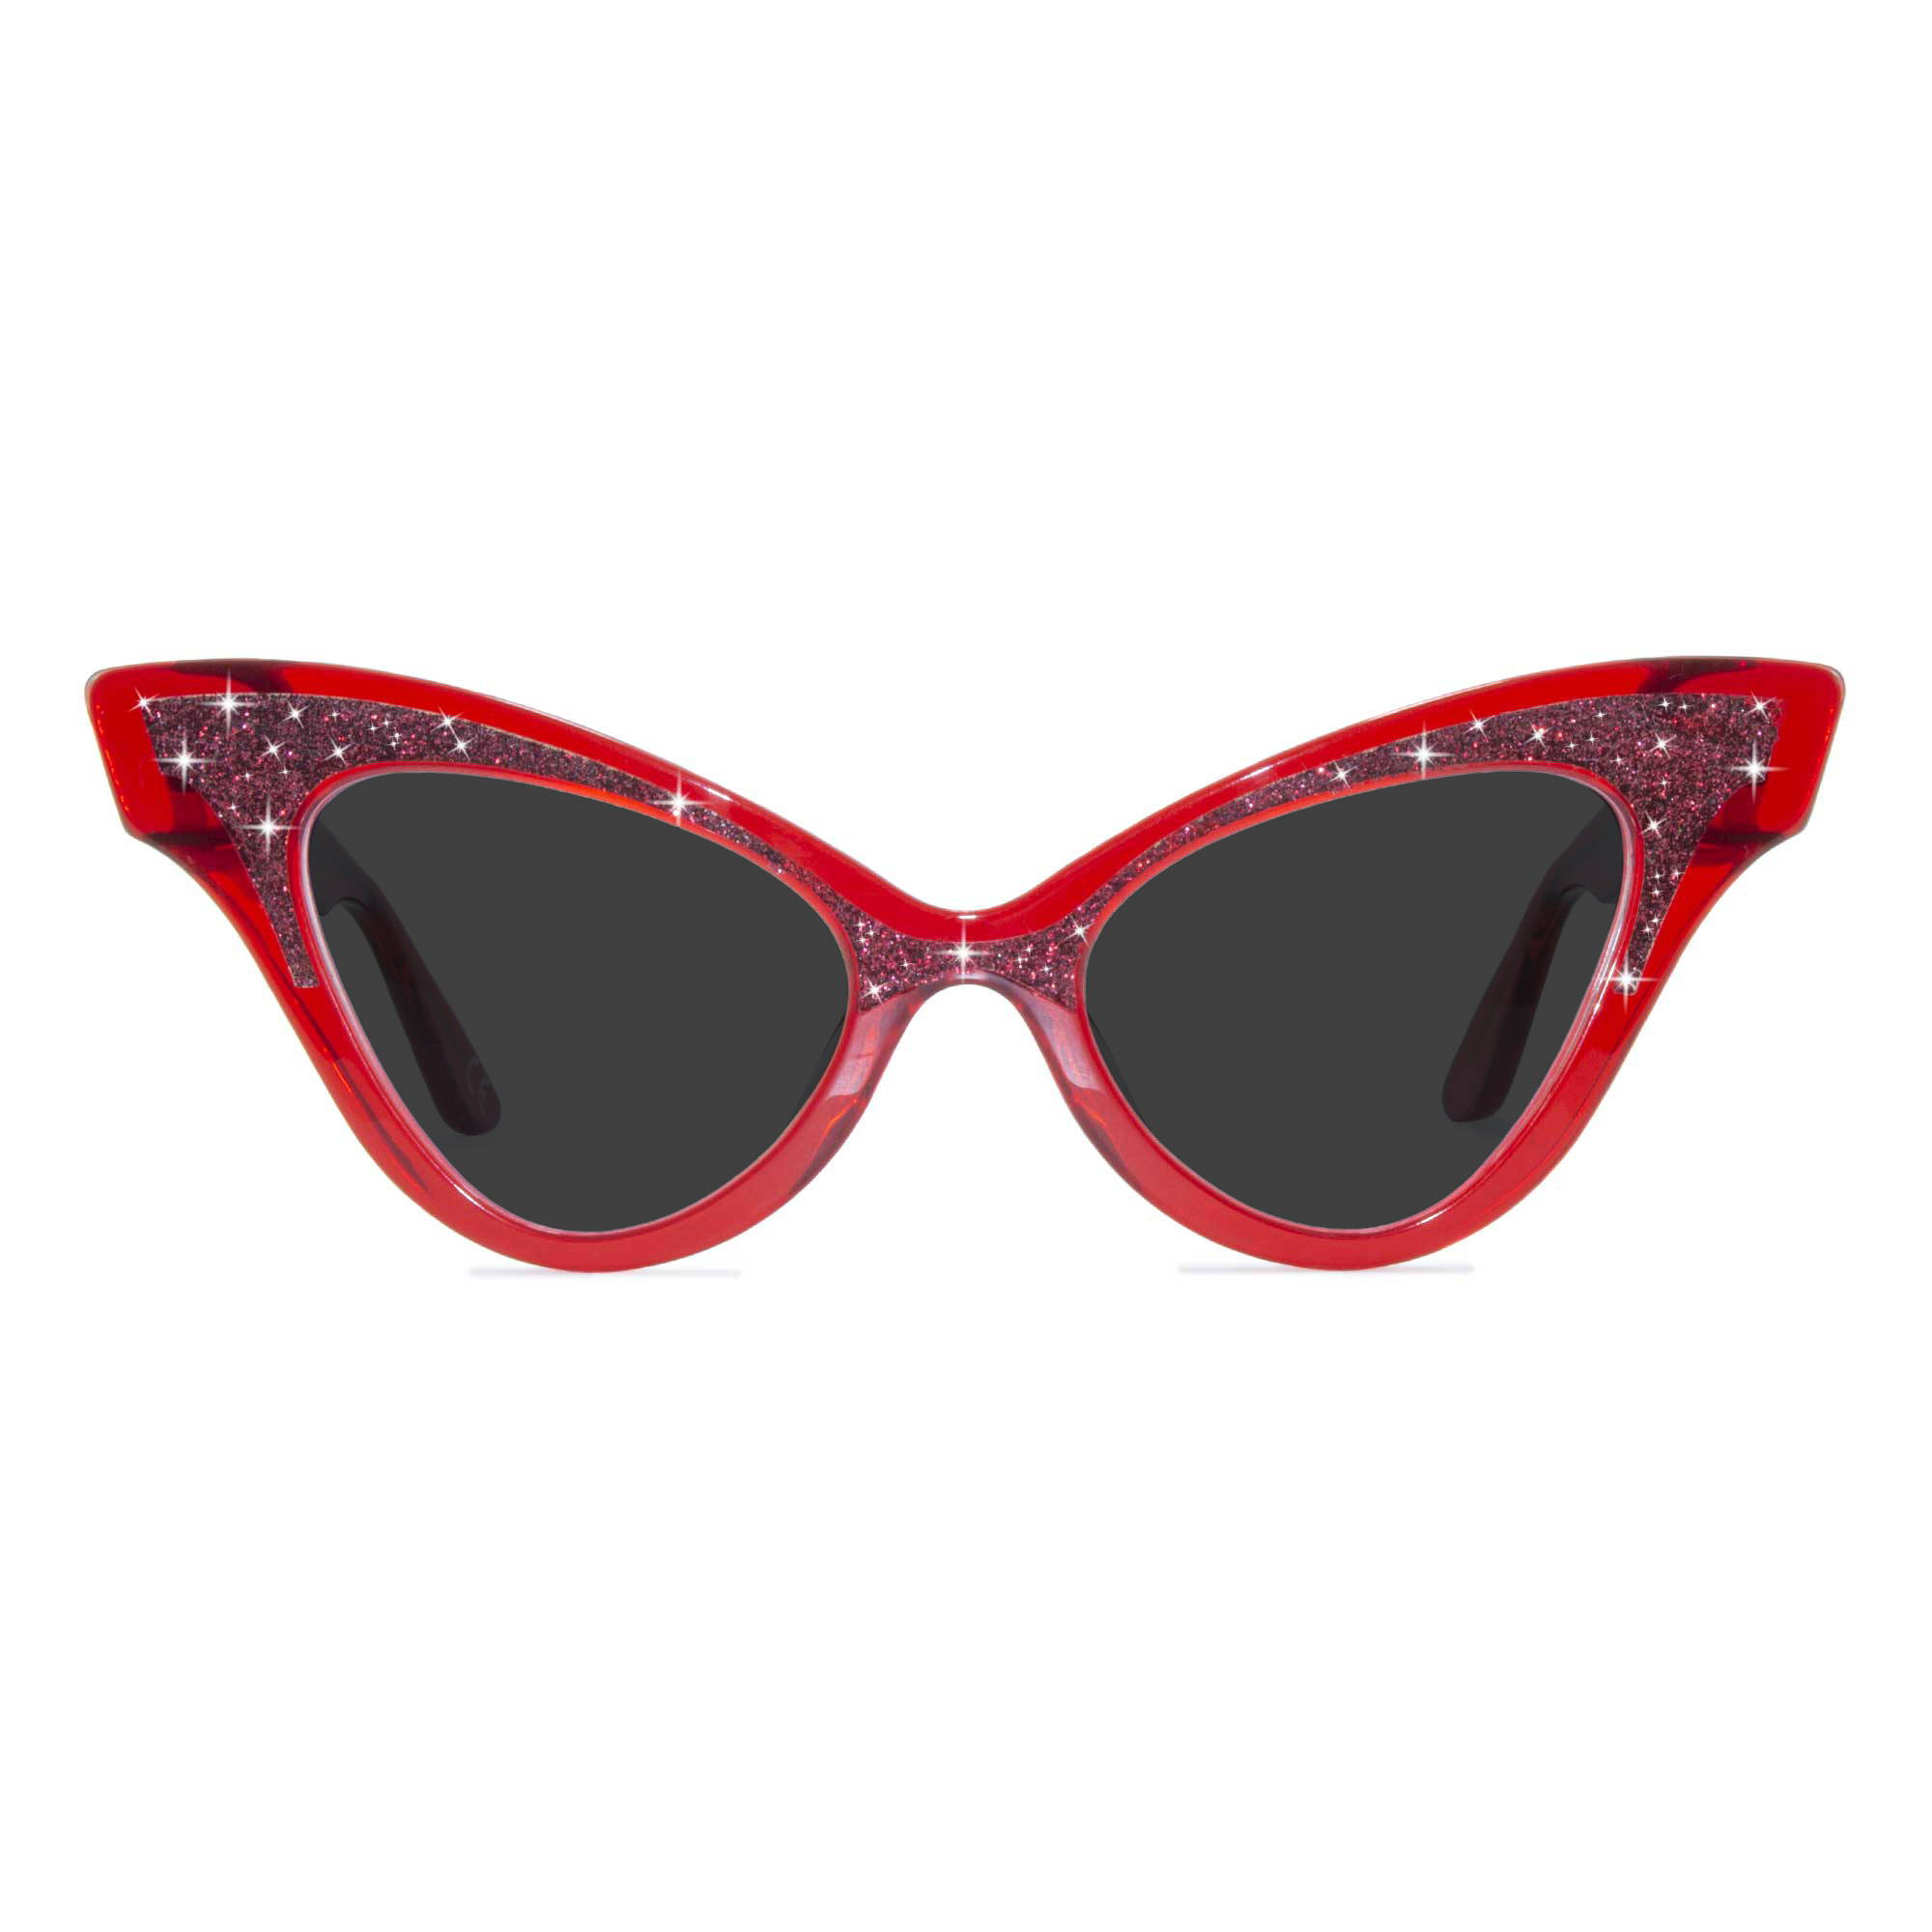 Joiuss glimmer clear red cat eye sunglasses